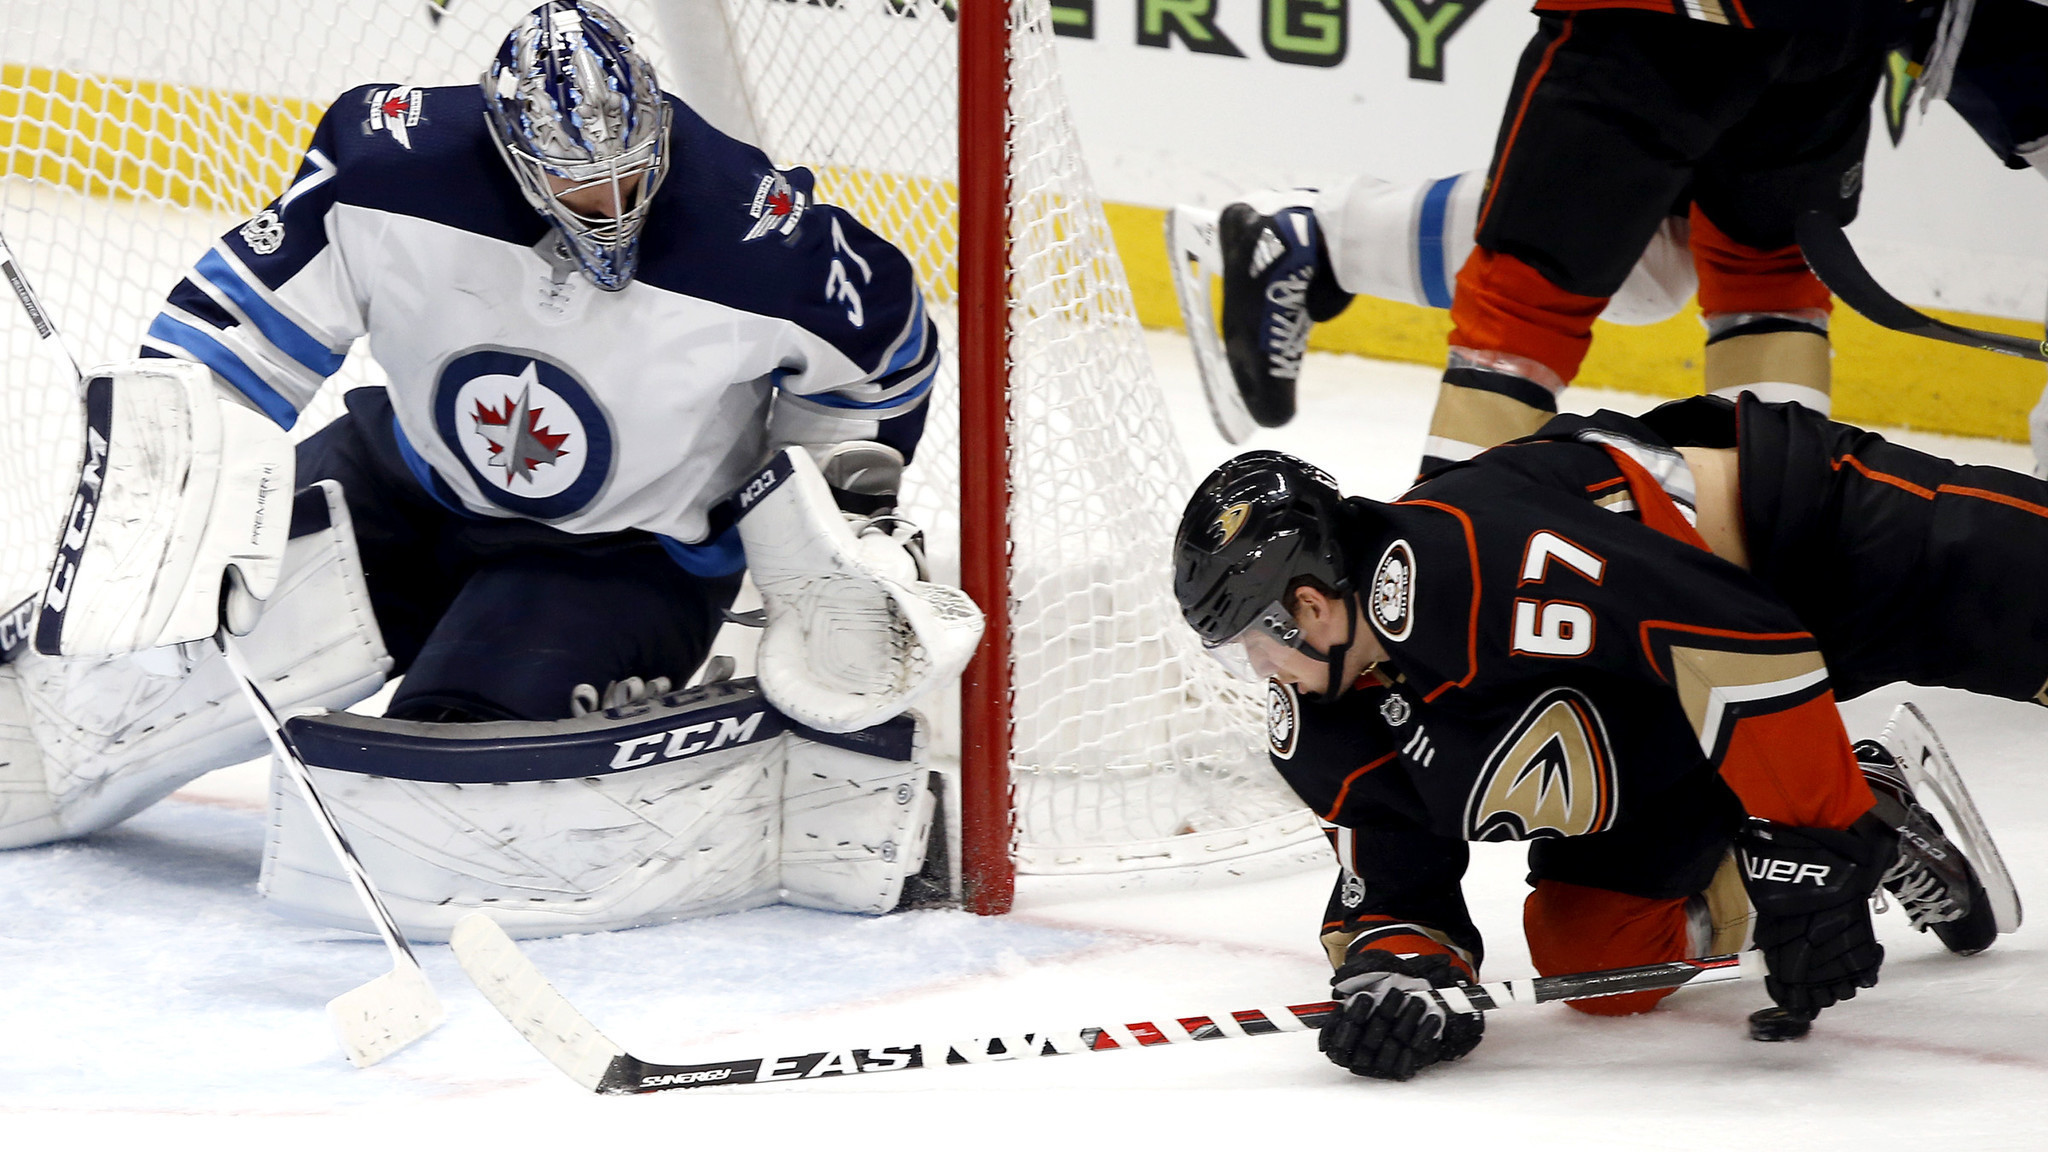 Ducks fall behind early and never recover in 4-1 loss to the Jets